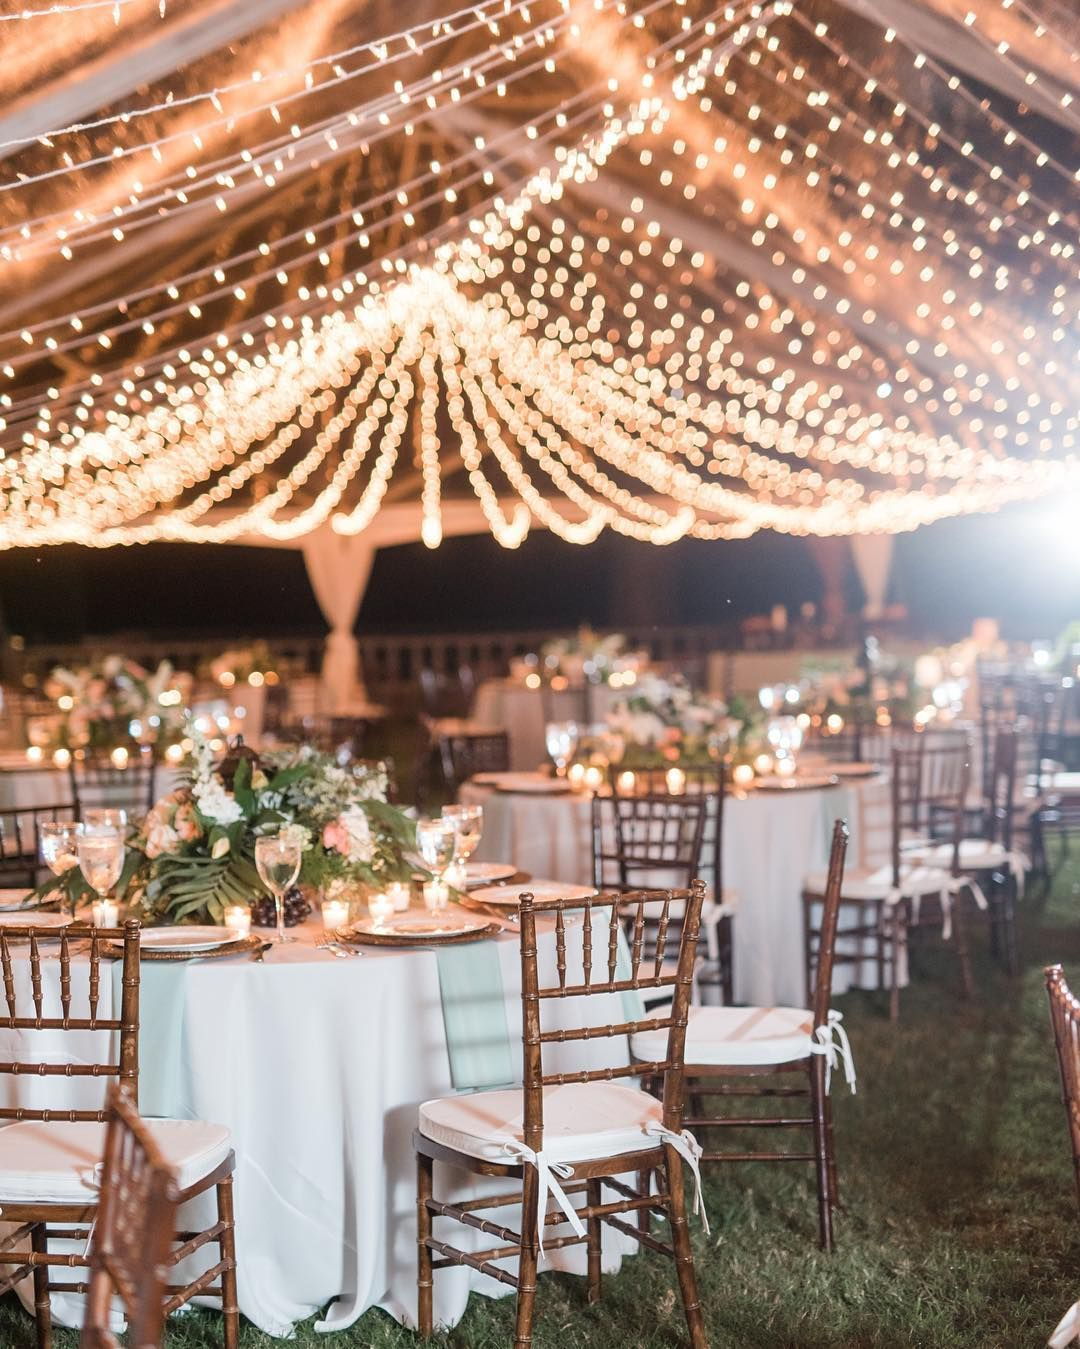 32 Amazing Outdoor Wedding Tents Ideas To Inspire